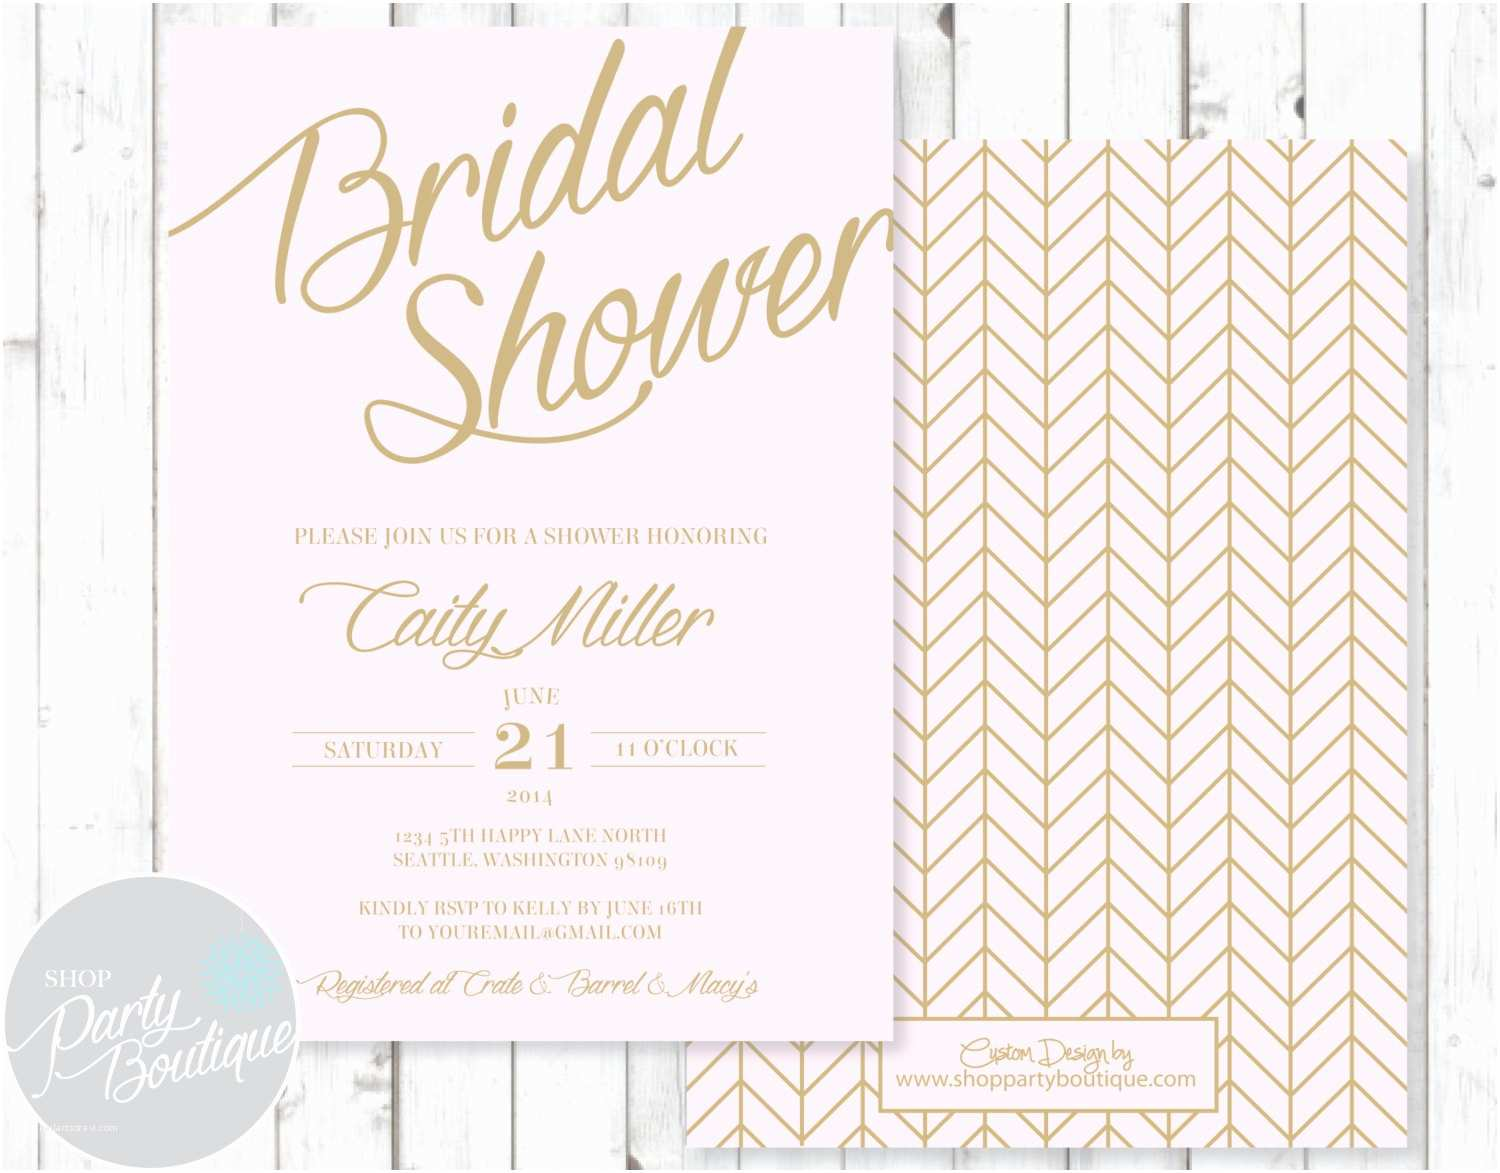 Etsy Wedding Shower Invitations Pink & Gold Bridal Shower Invitations by Shoppartyboutique